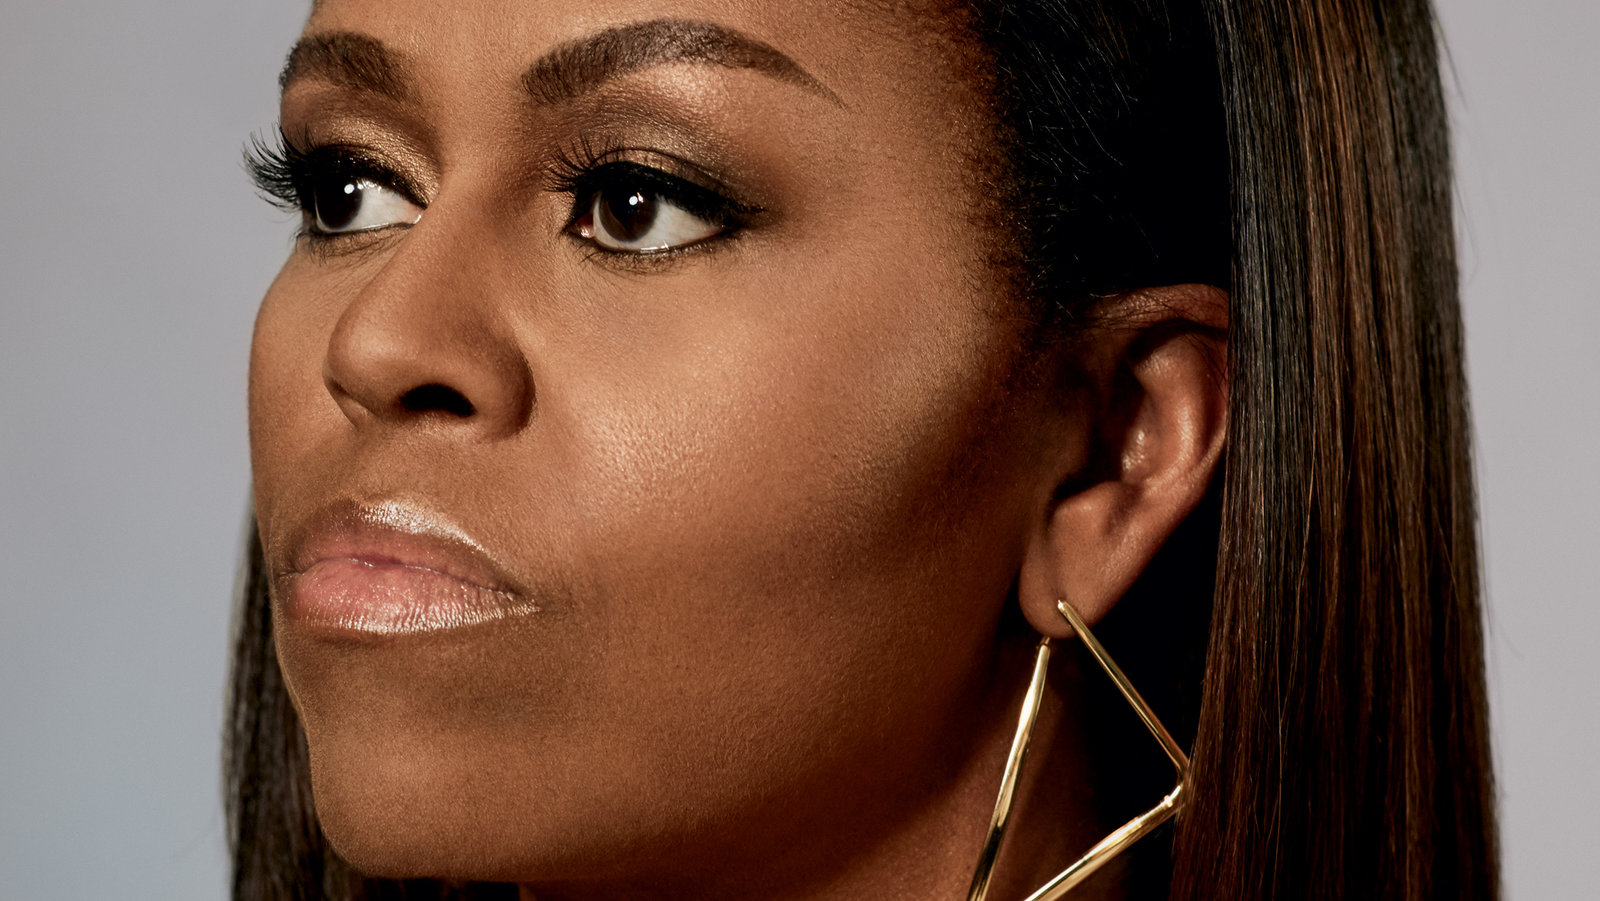 michelle-obama-gets-candid-about-the-exhausting-racism-she-experienced-even-while-at-the-white-house